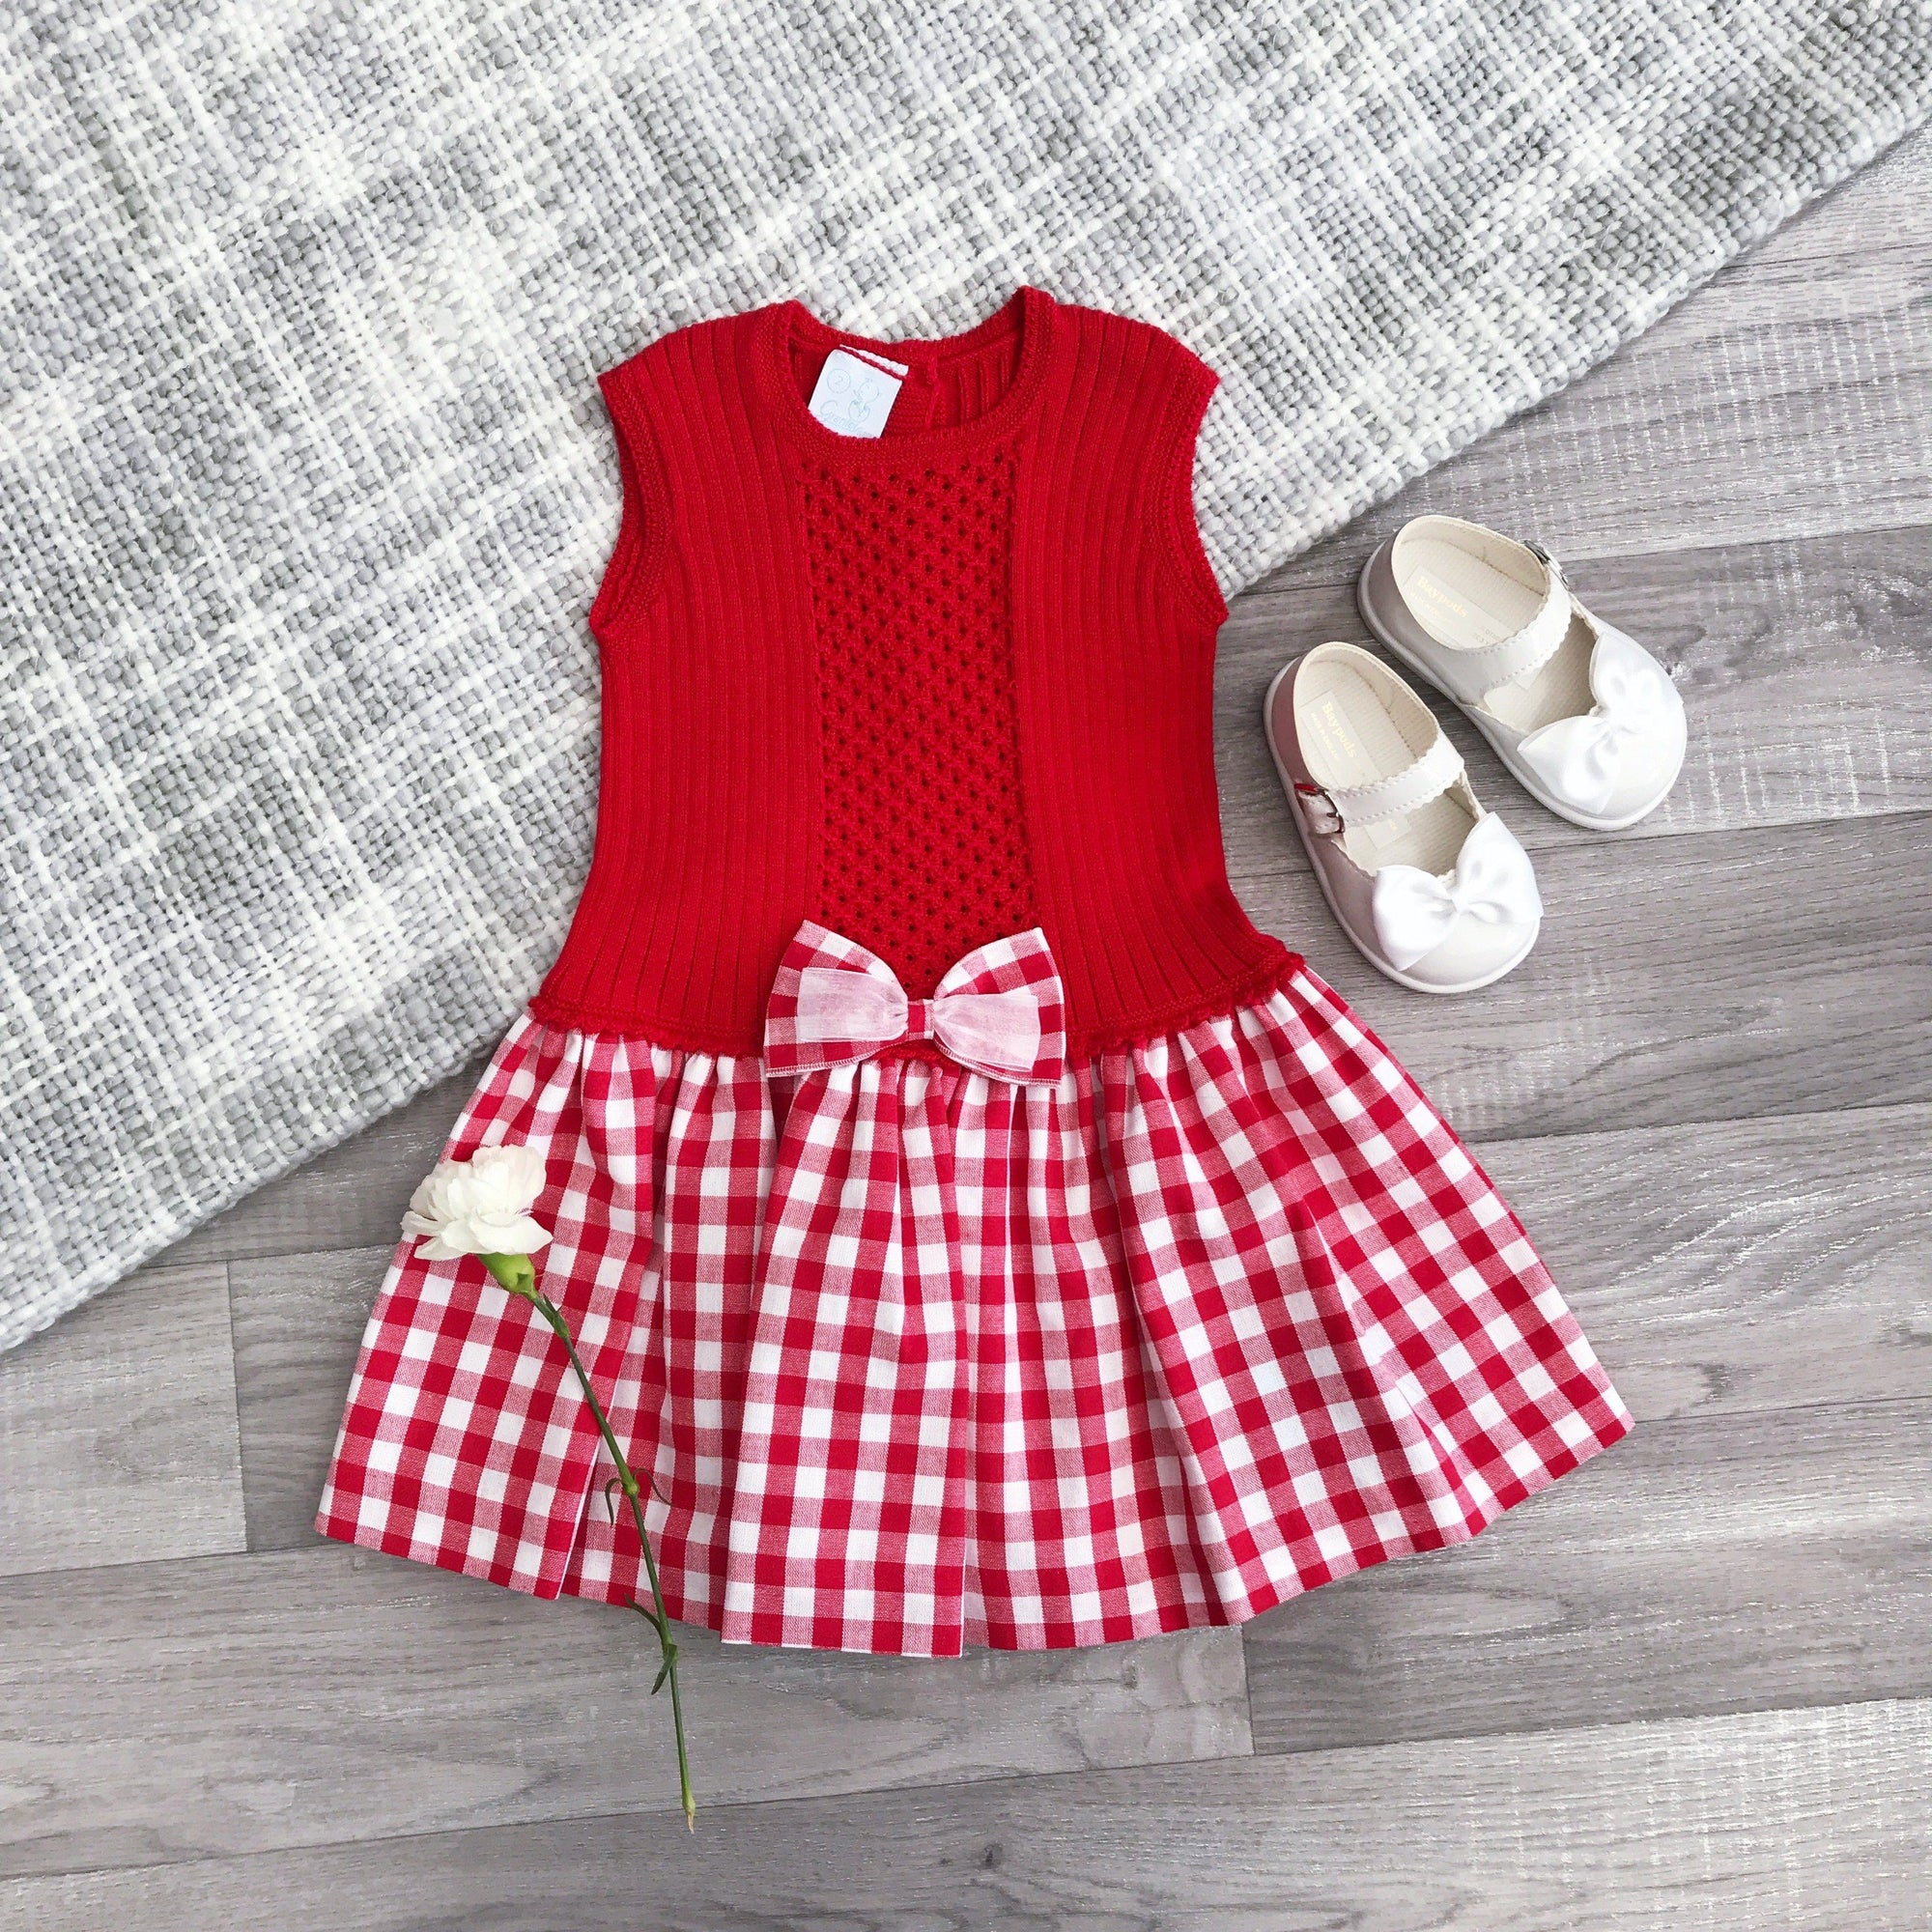 Granlei Red Half Knit Gingham Dress | Millie and John